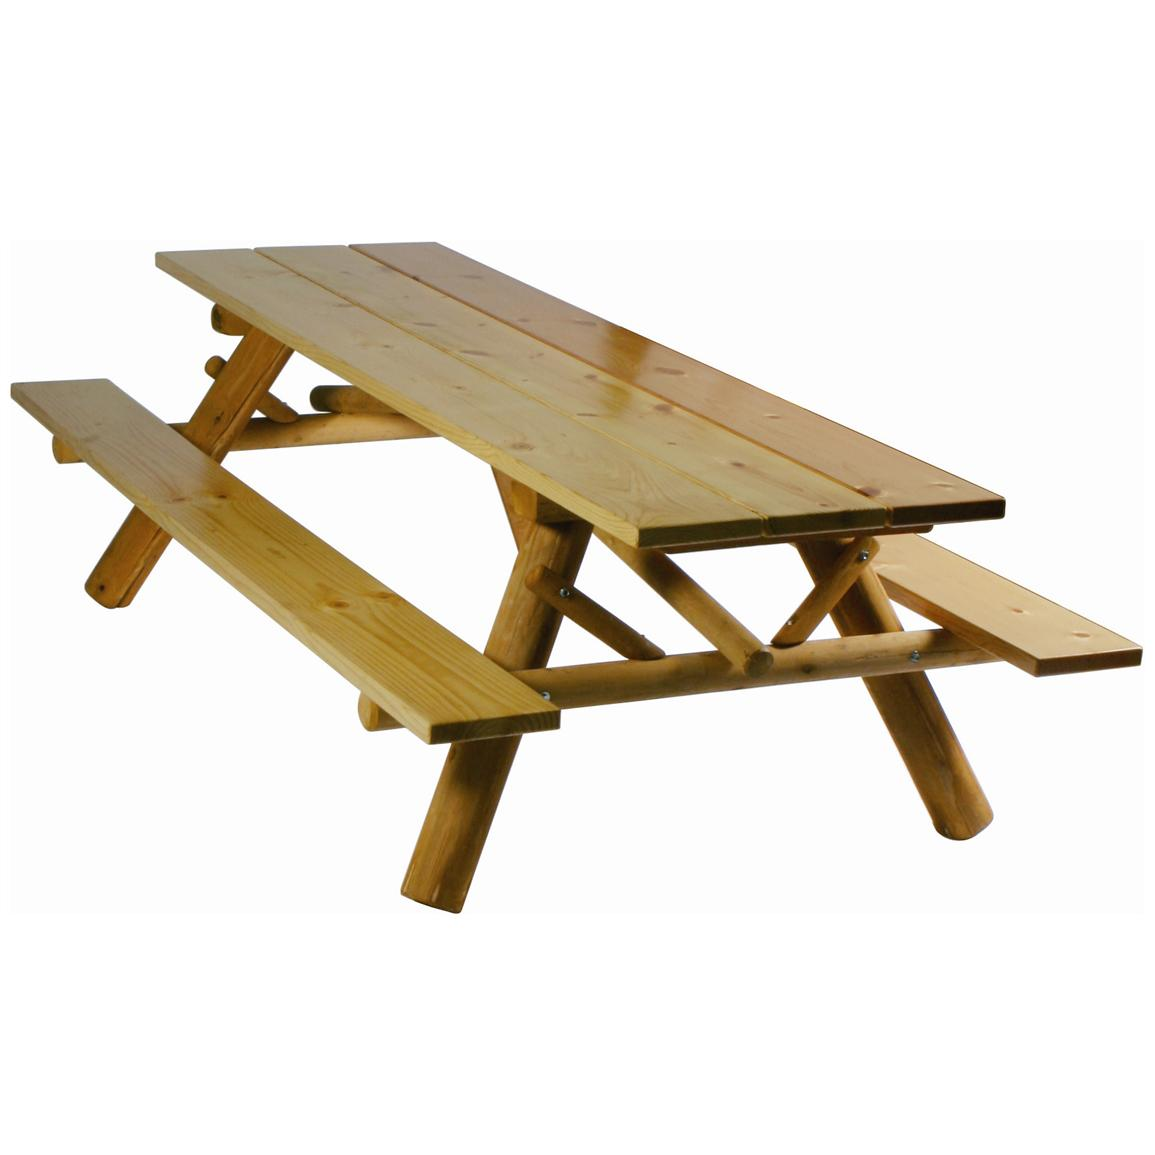 File Name   6 Foot Picnic Table Plans 526559 Jpg Resolution   230 X